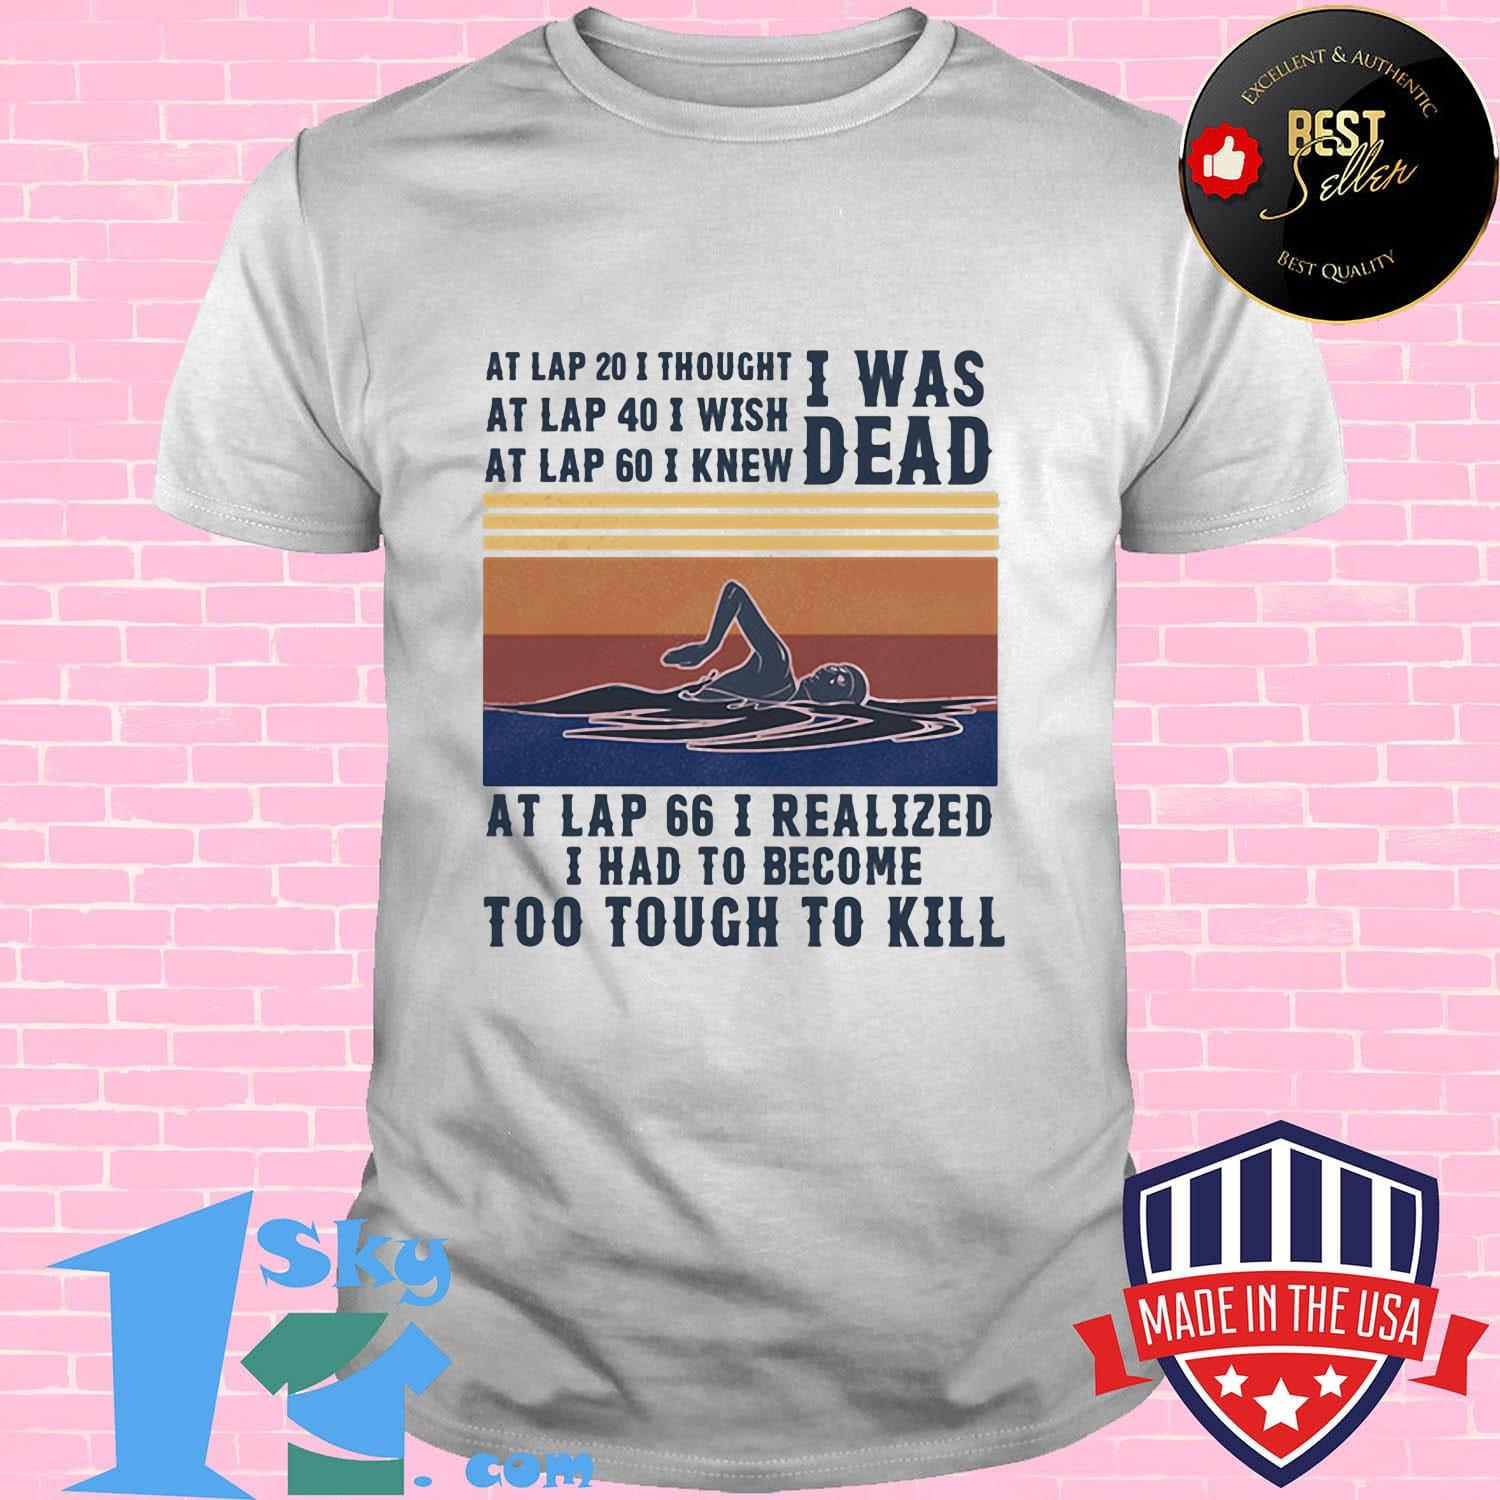 497510a1 i was dead at lap 66 i realized i had to become too tough to kill swim vintage retro shirt unisex - Shop trending - We offer all trend shirts - 1SkyTee